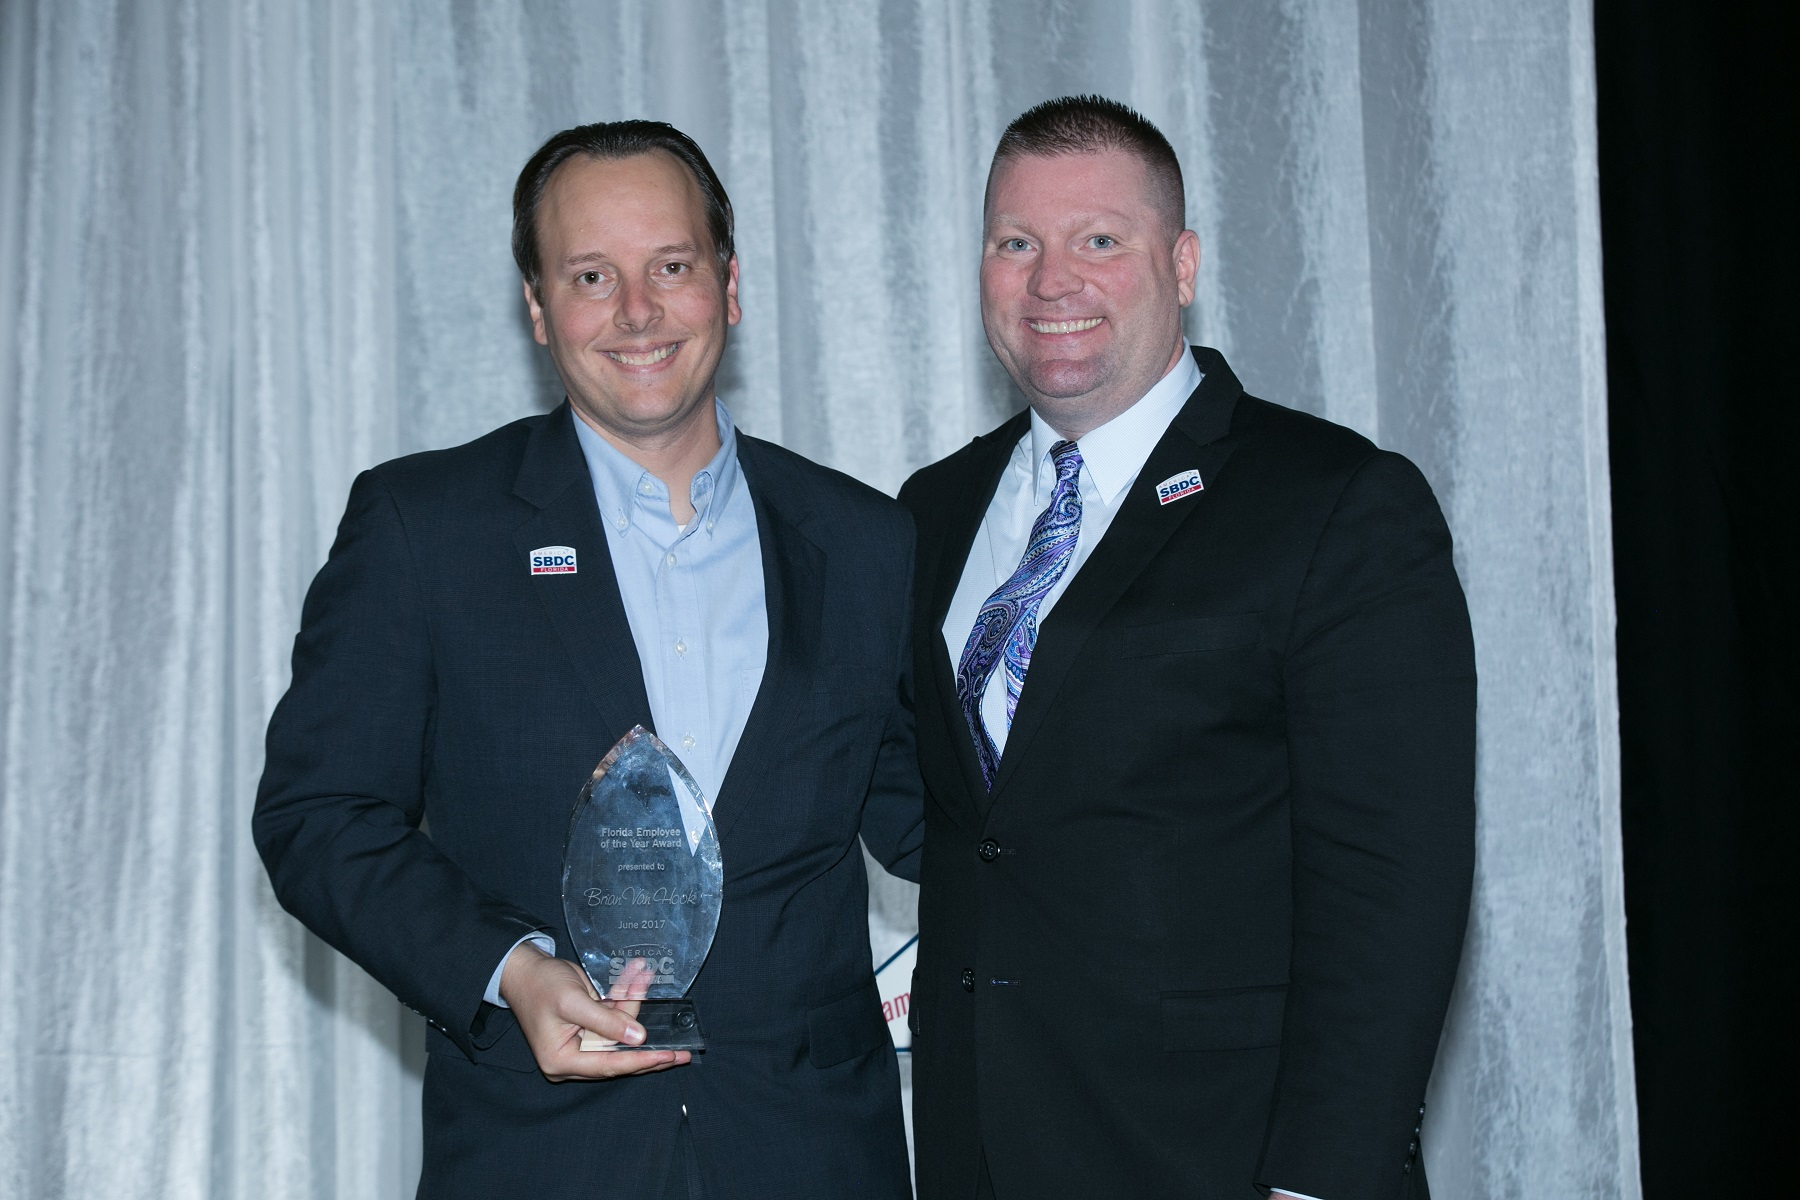 L-R: Brian Van Hook, the Florida SBDC's 2017 Employee of the Year, and Michael Myhre